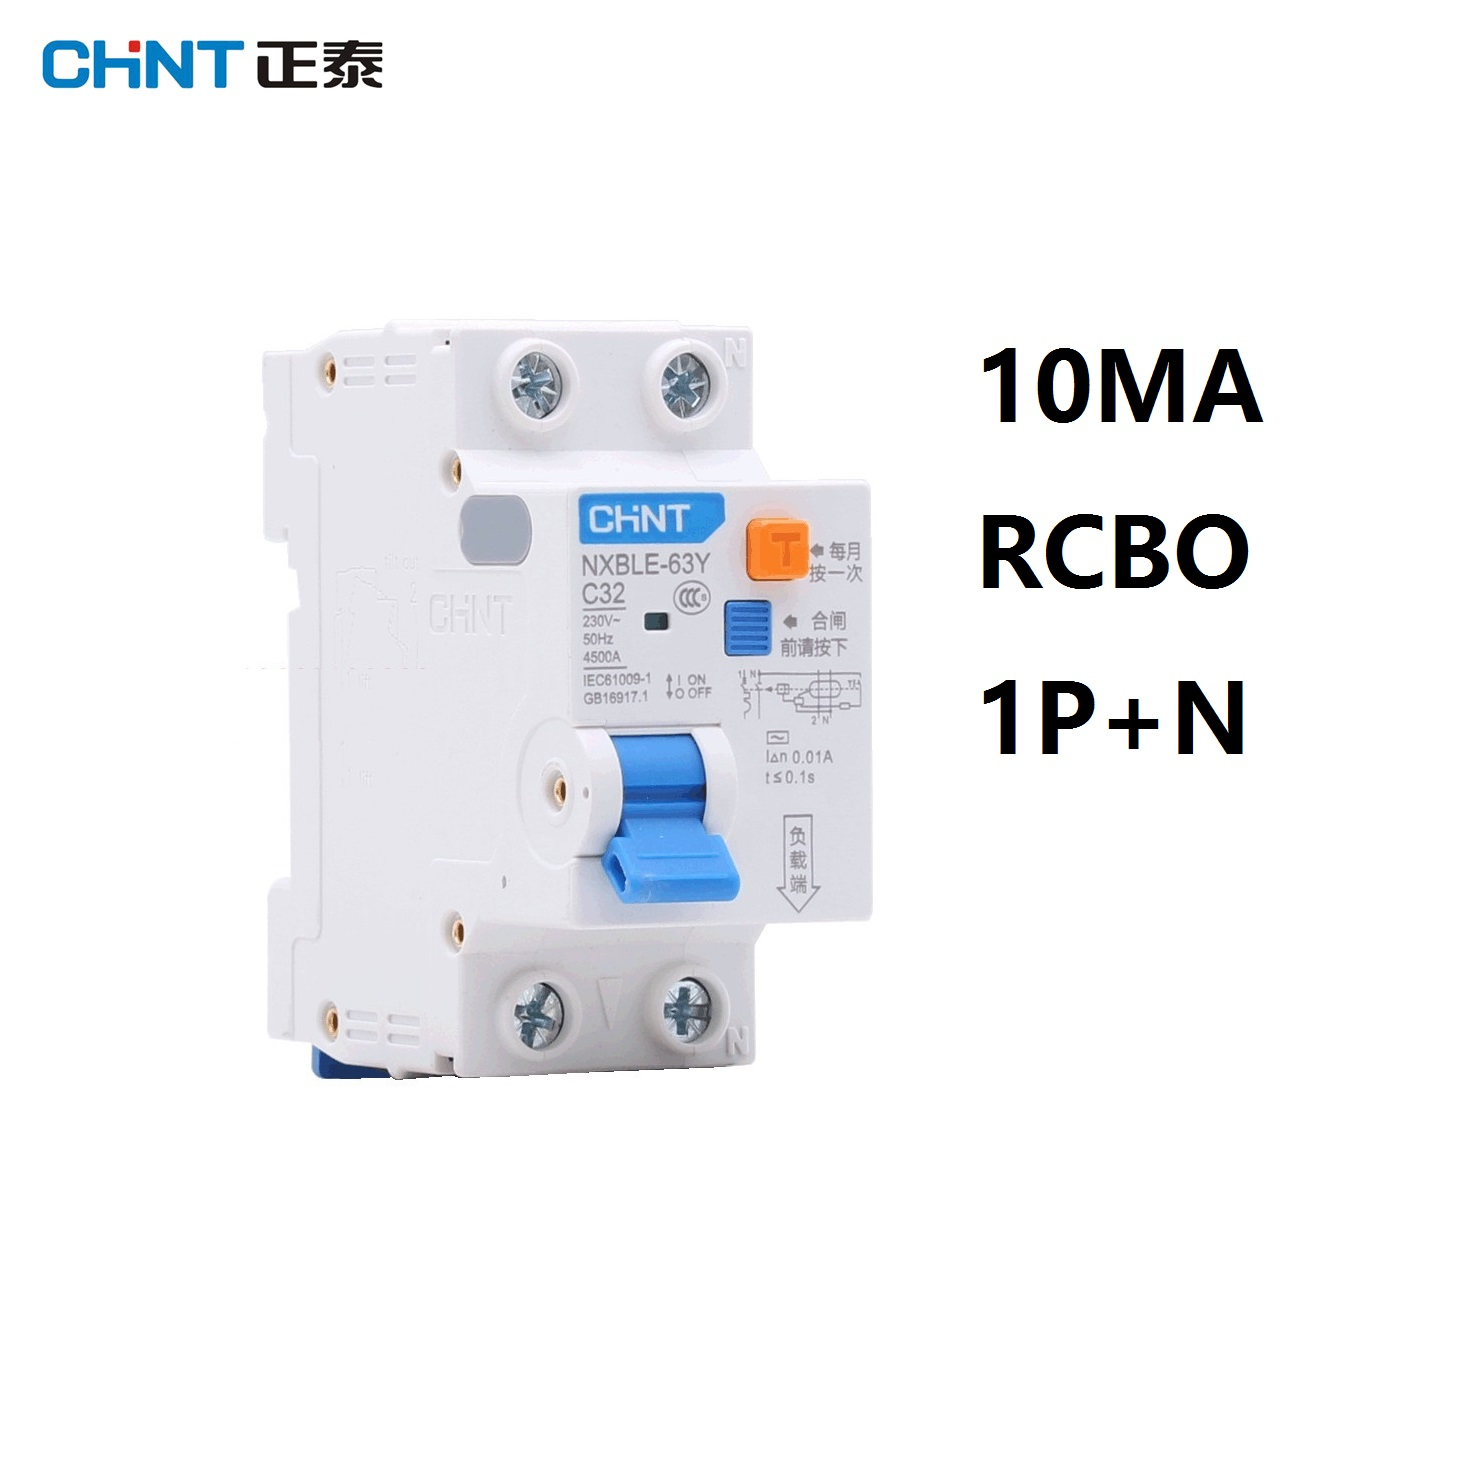 CHINT NXBLE-63Y 16A 32A 63A 10MA 0.01A RCBO 1P+N 230V Residual current Circuit breaker with over current and Leakage protection 63a 3 p 3 p n rcbo rcd выключателя de47le delxi